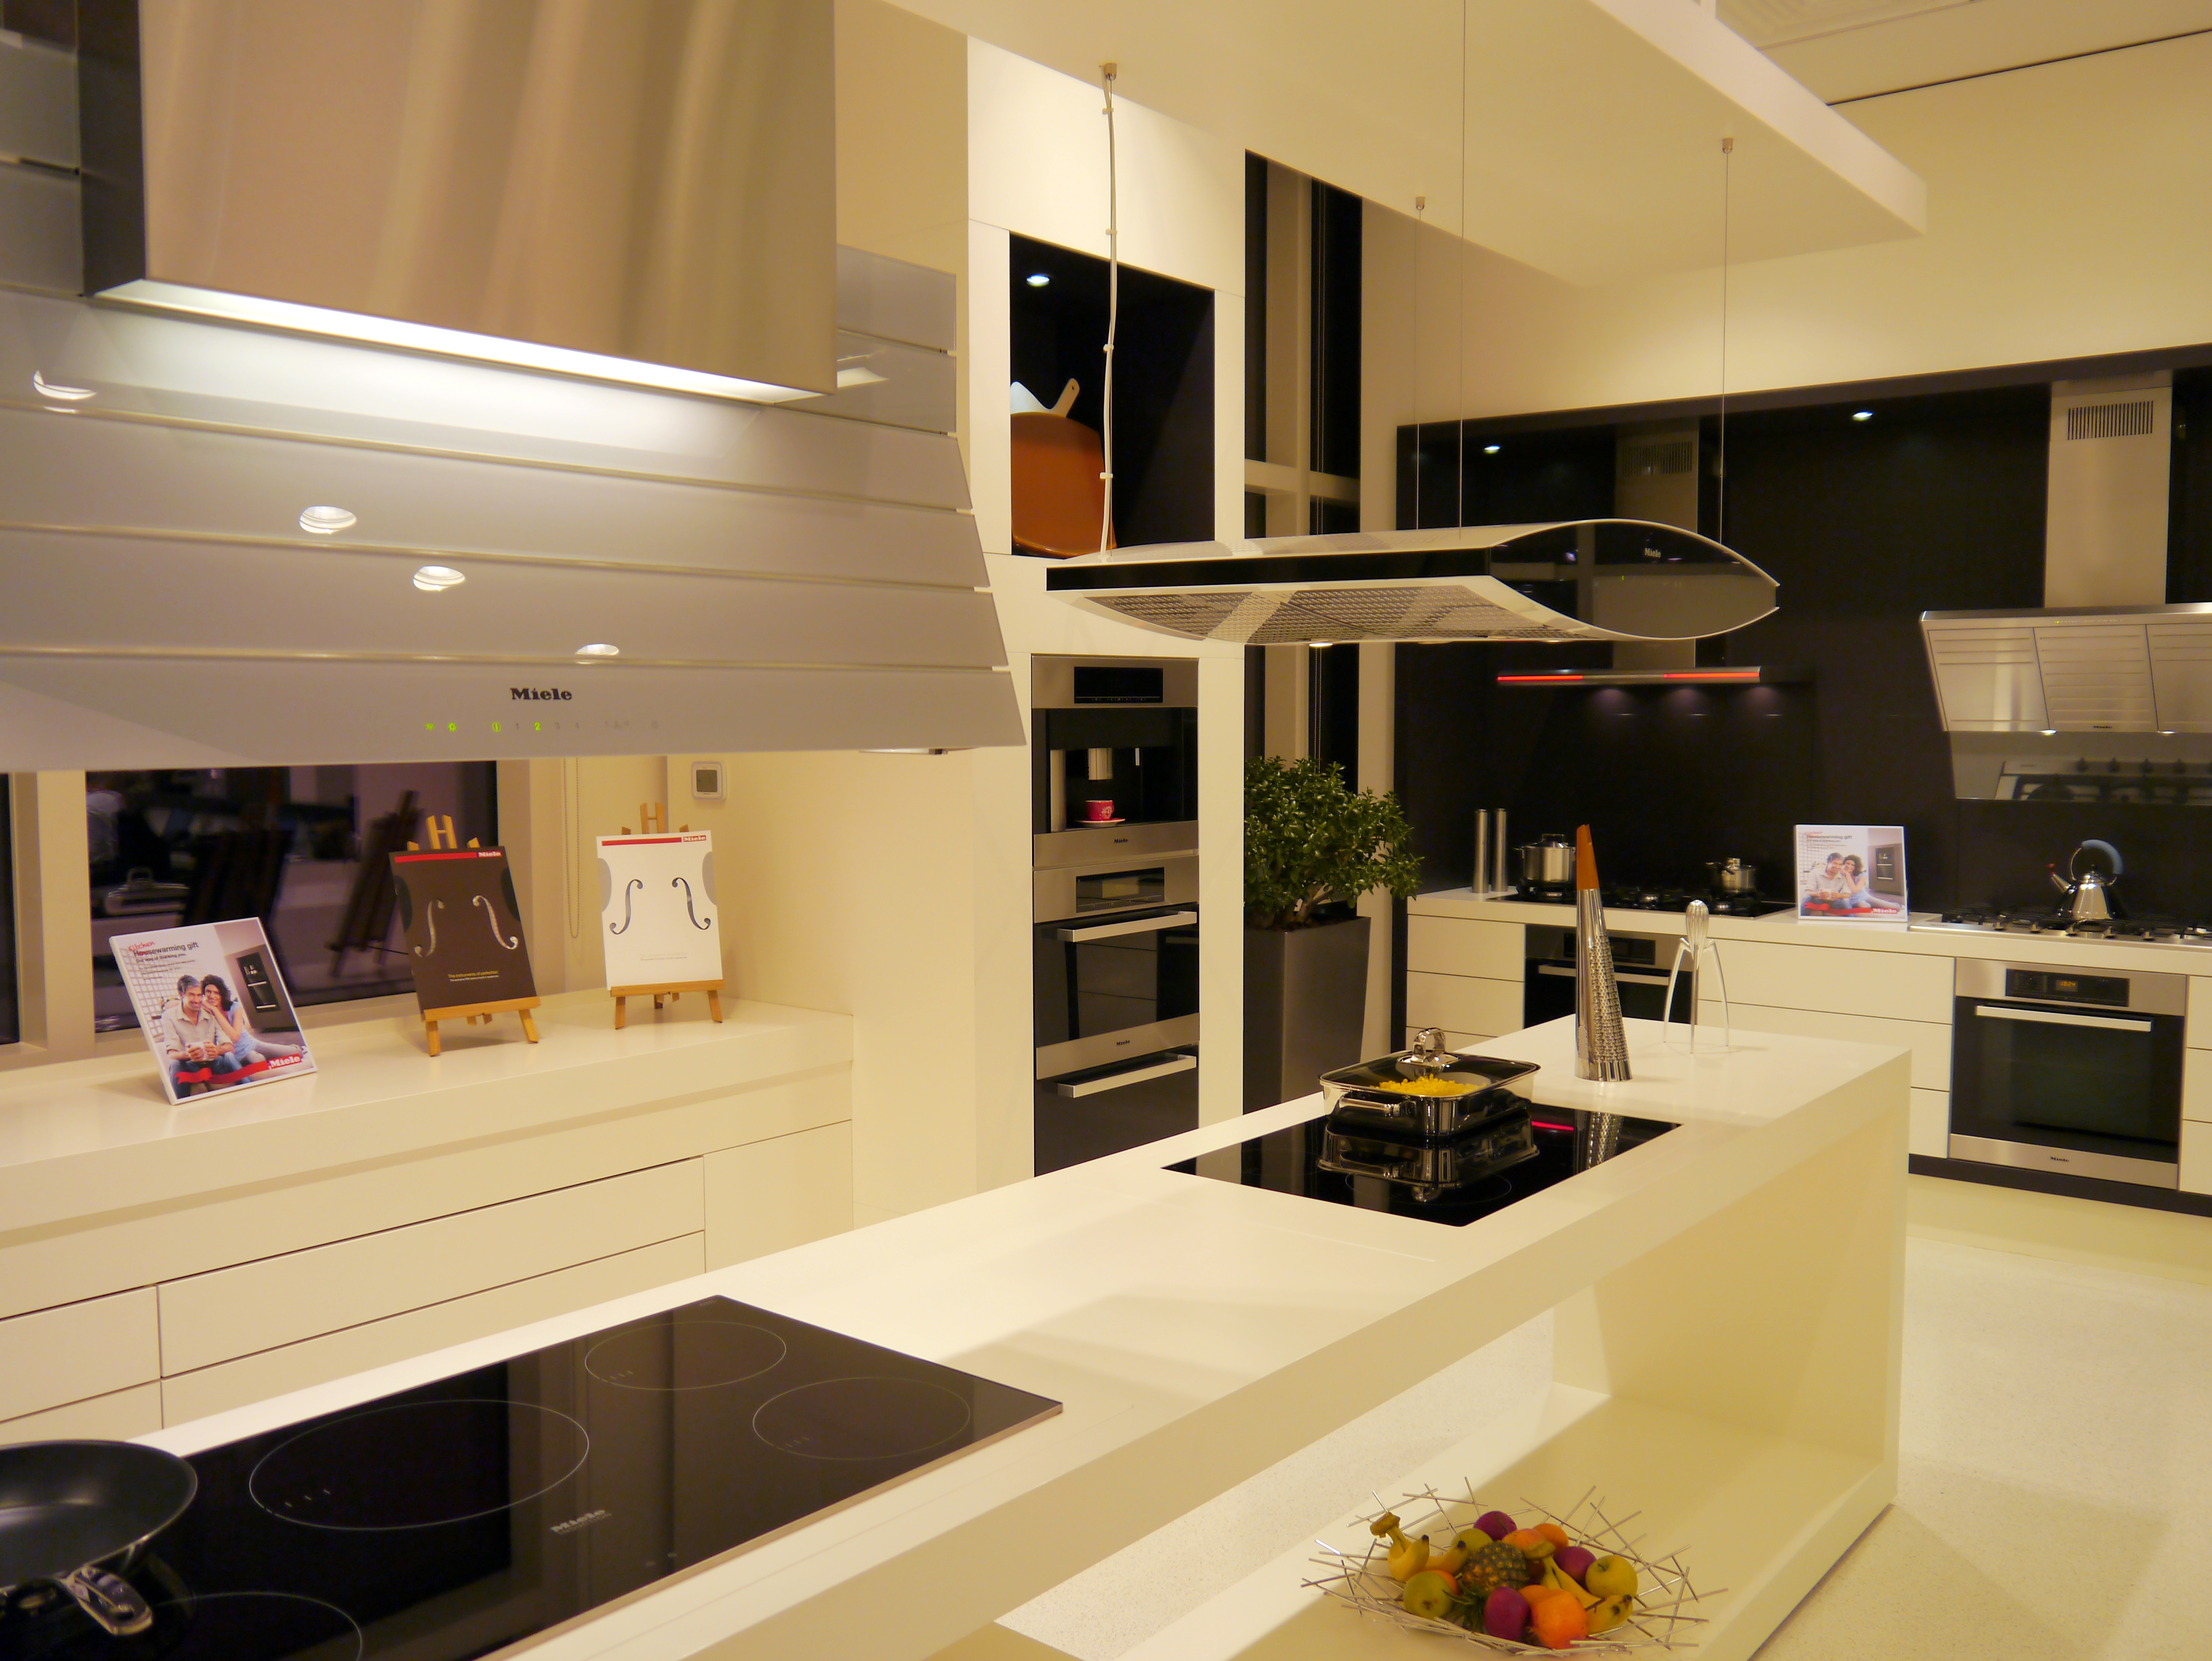 Kitchens With Their Fancy Extractor Hoods In The Showroom